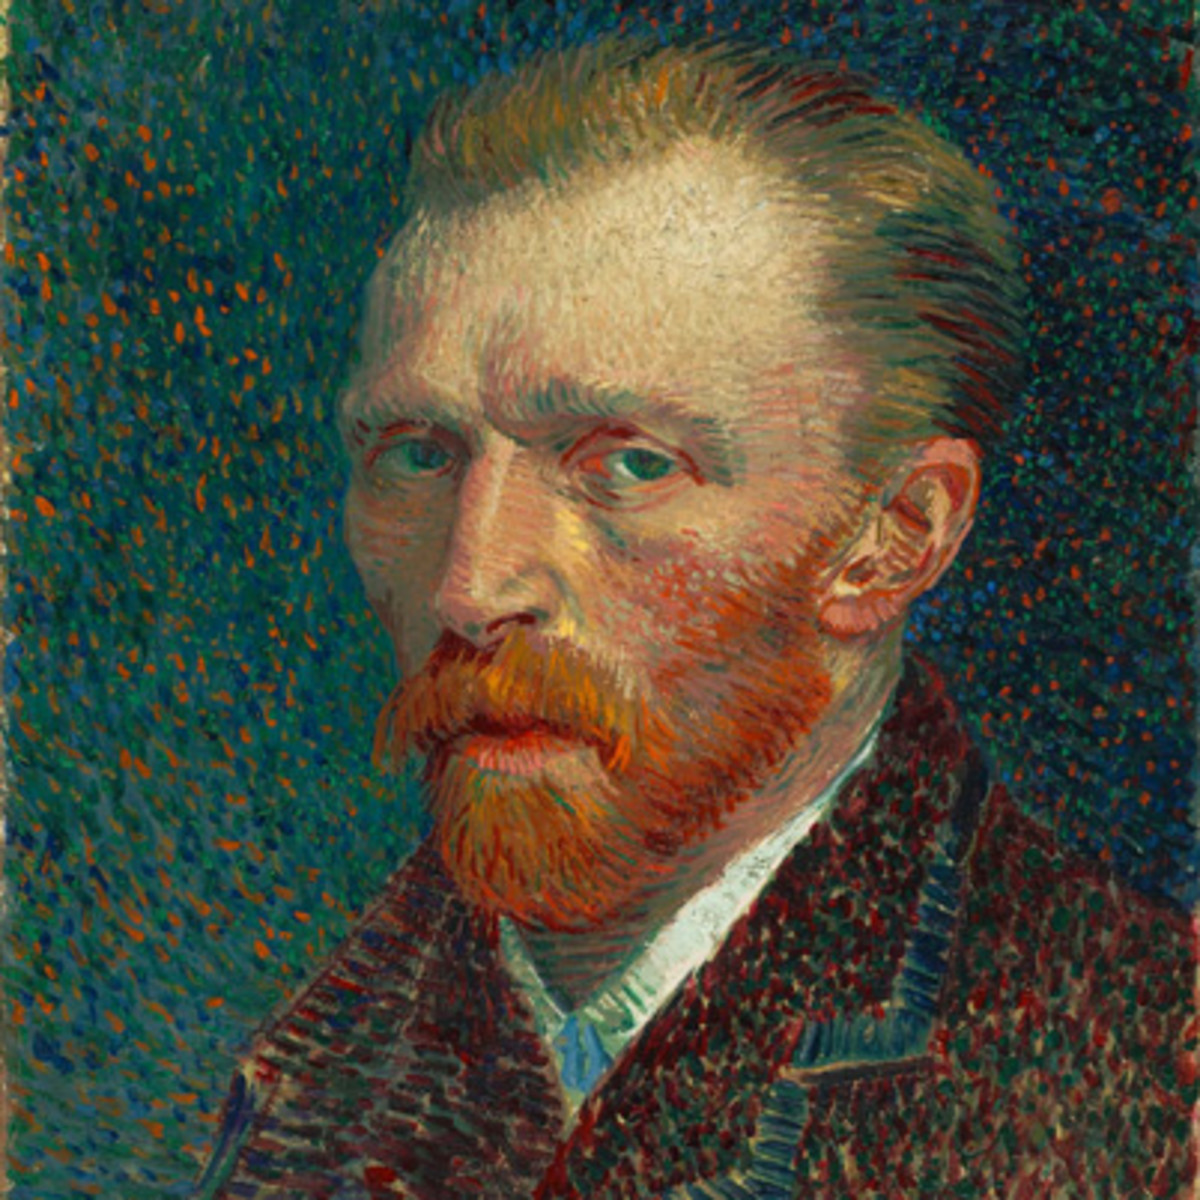 vincent van gogh biography biography com